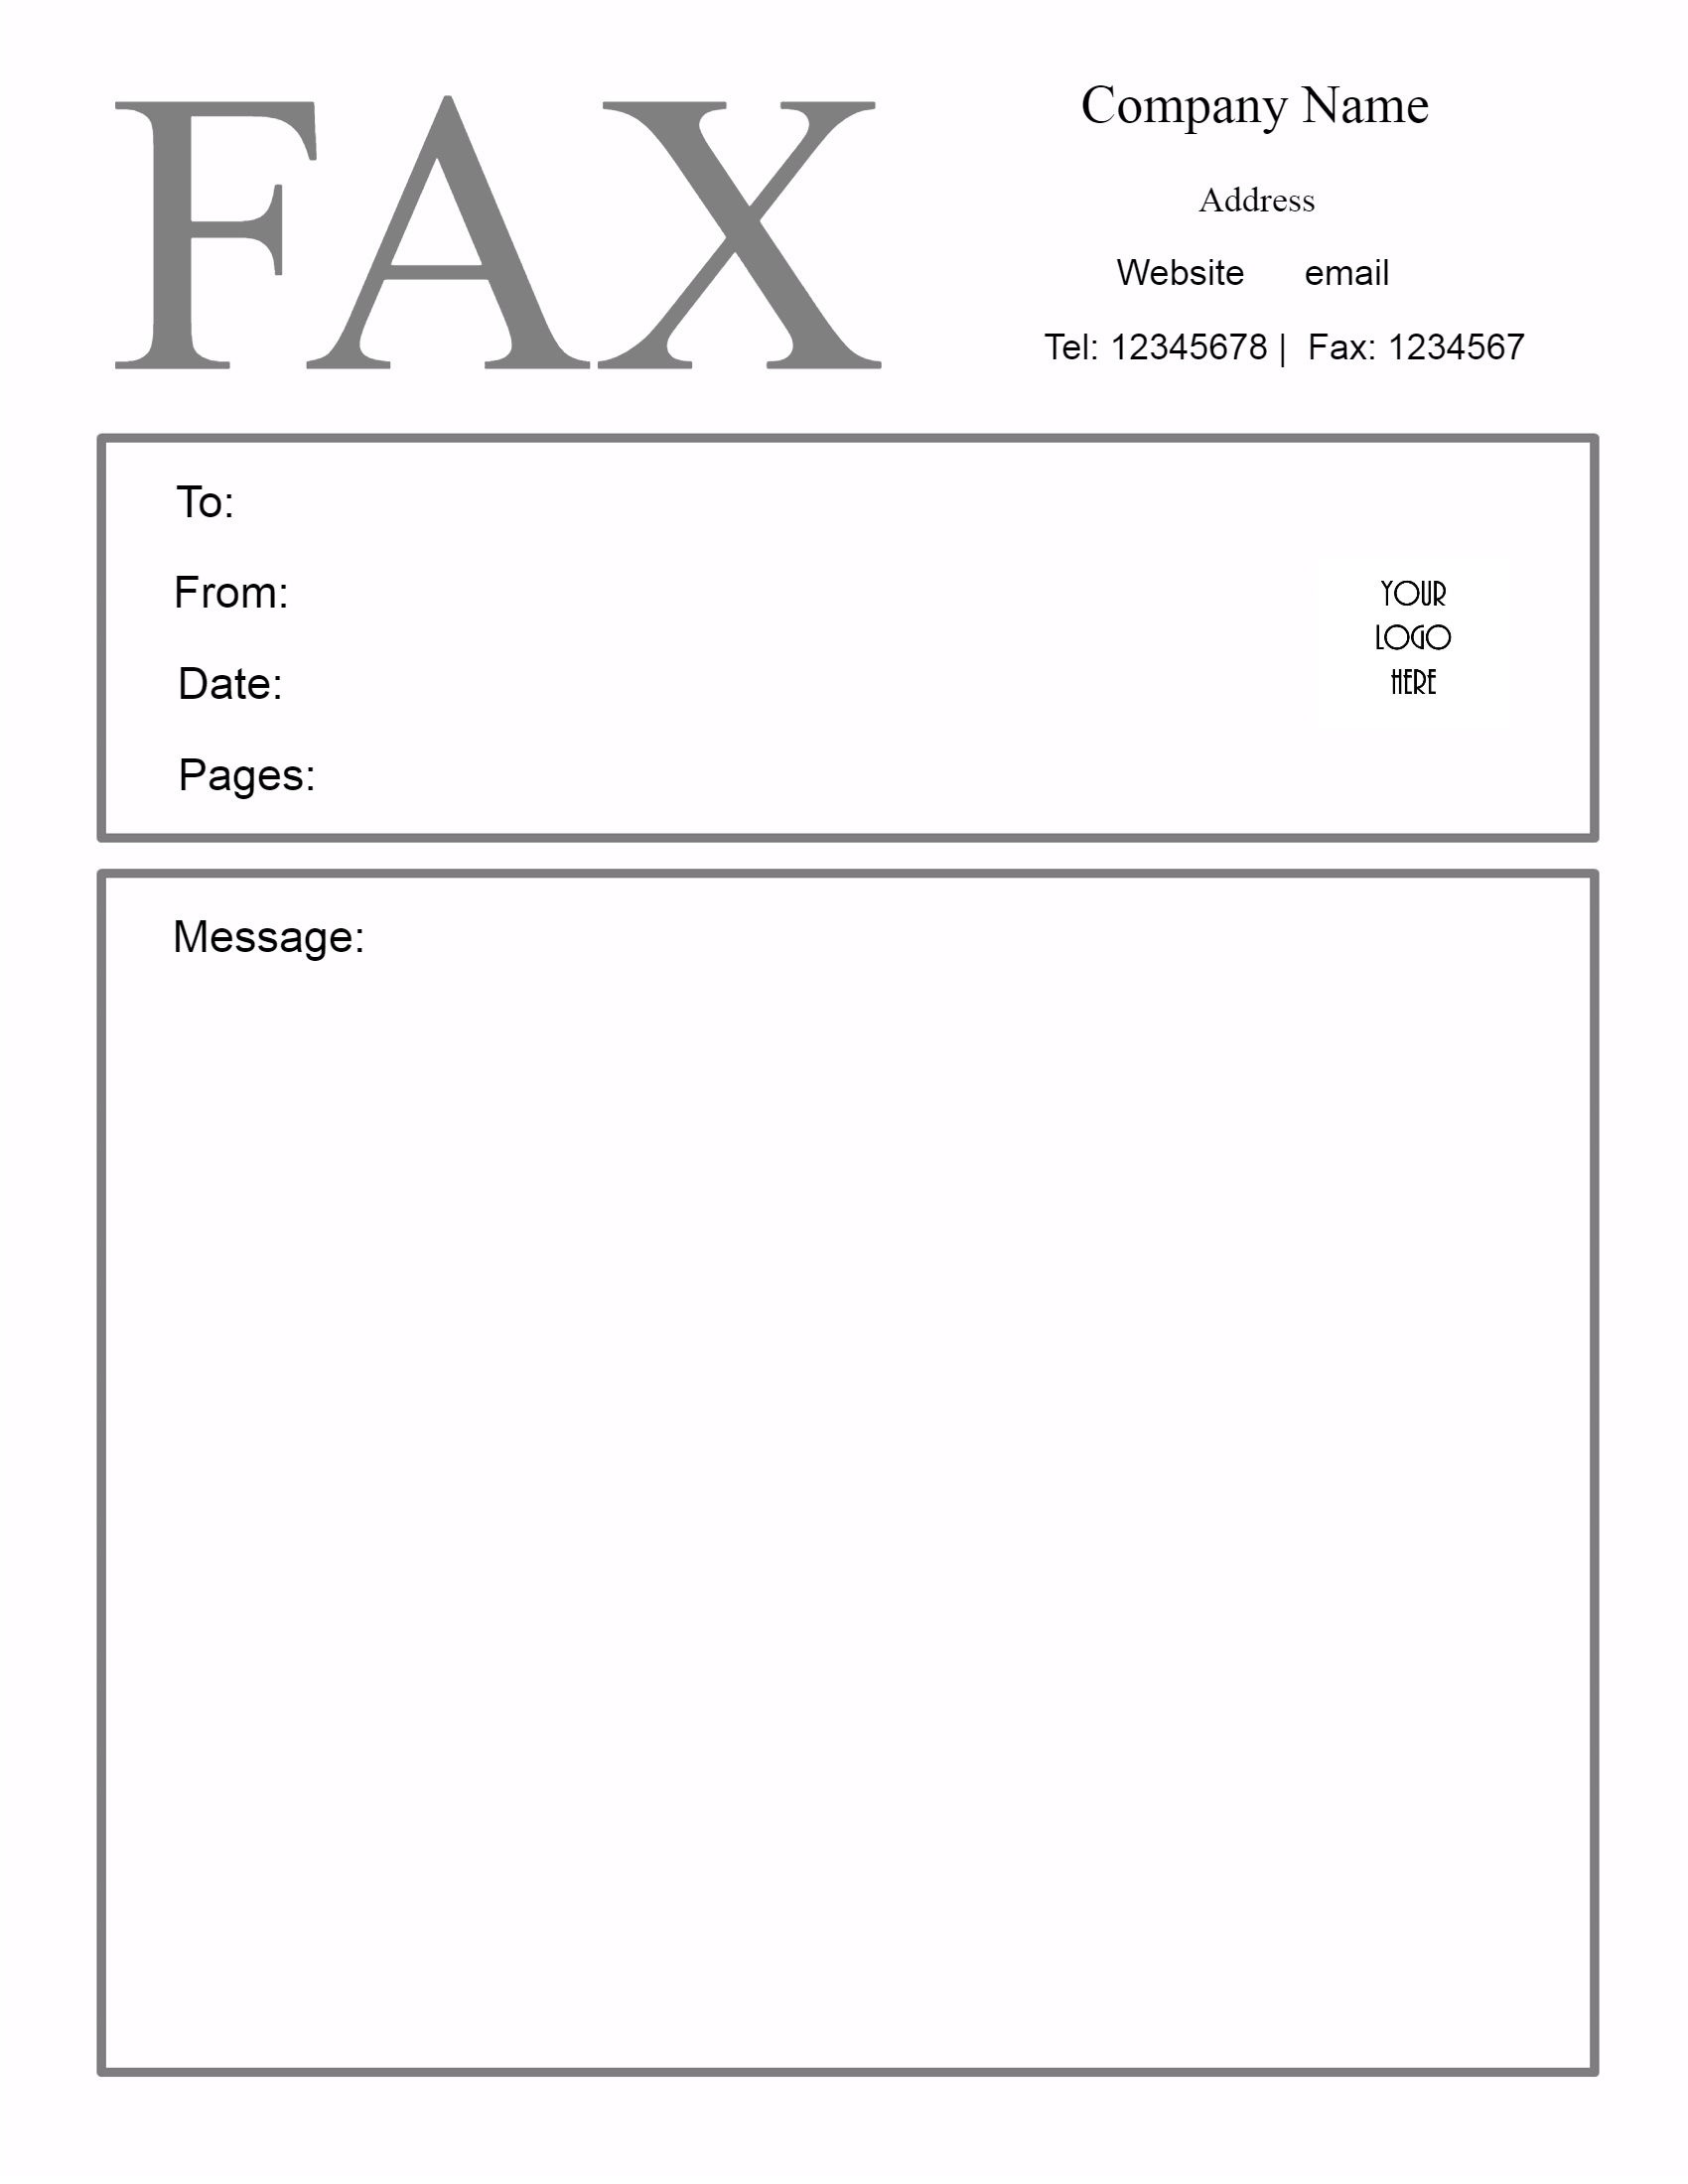 Free Fax Cover Sheet Template | Customize Online Then Print - Free Printable Message Sheets